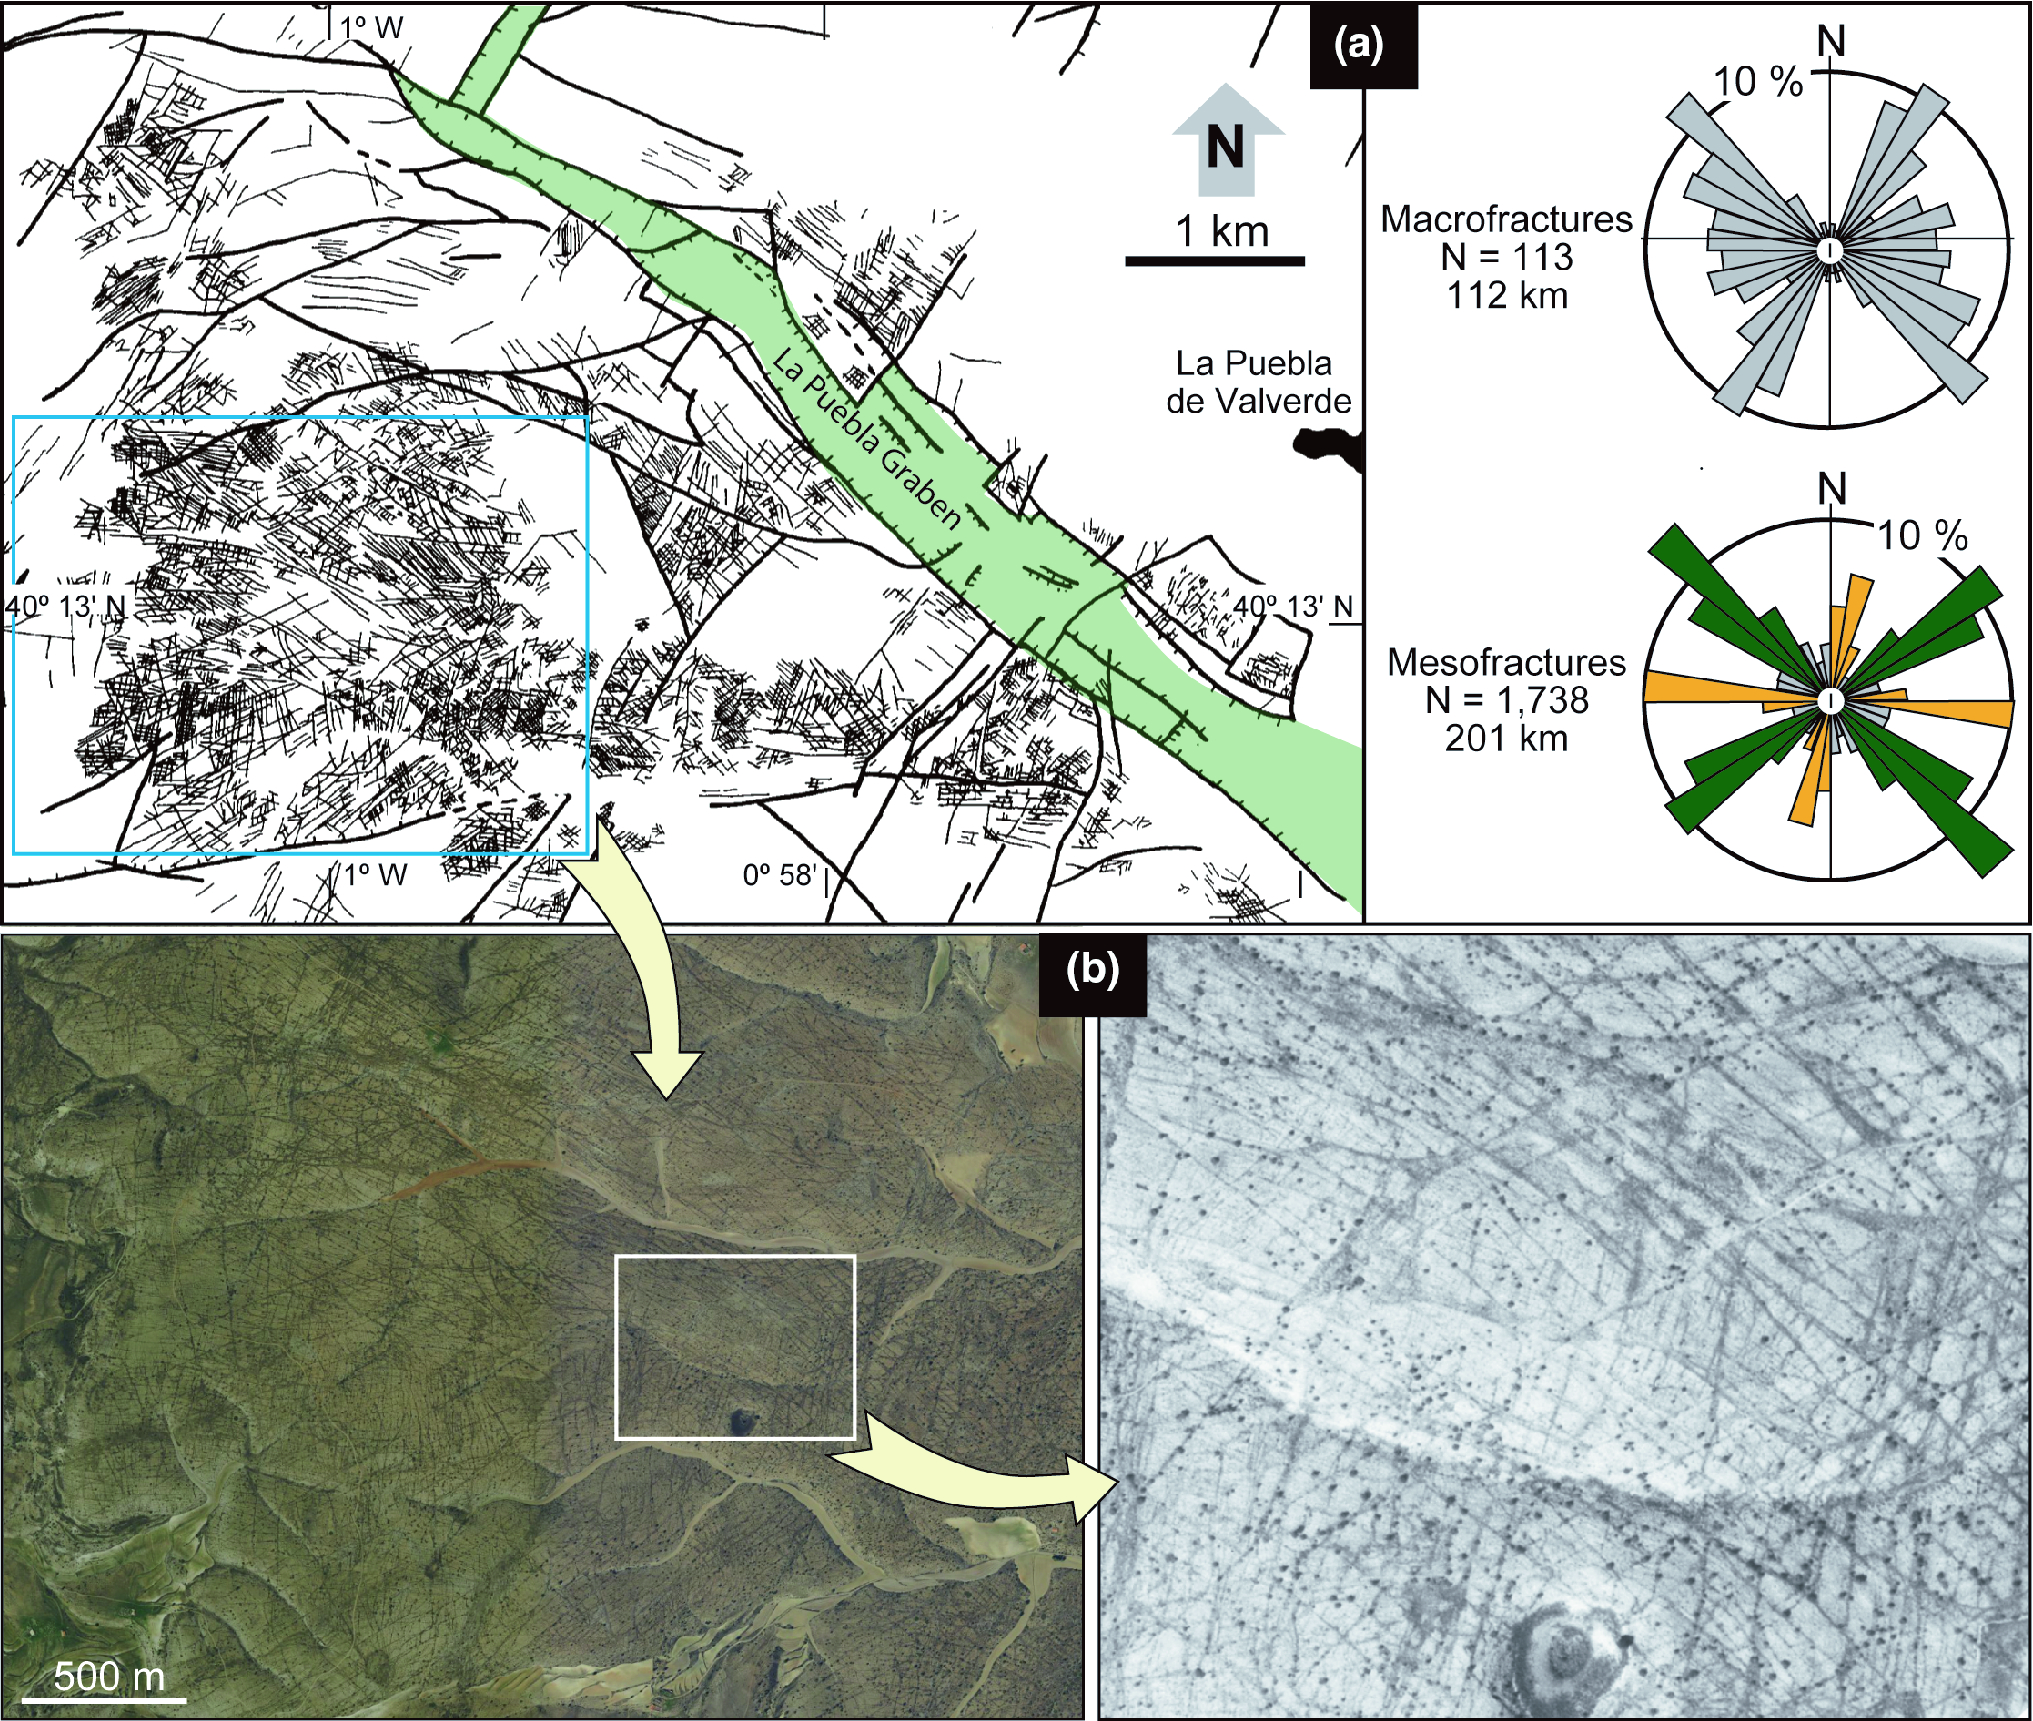 The Late Juric–Early Cretaceous Rifting | SpringerLink Hg Ut Southwestern Campus Map on